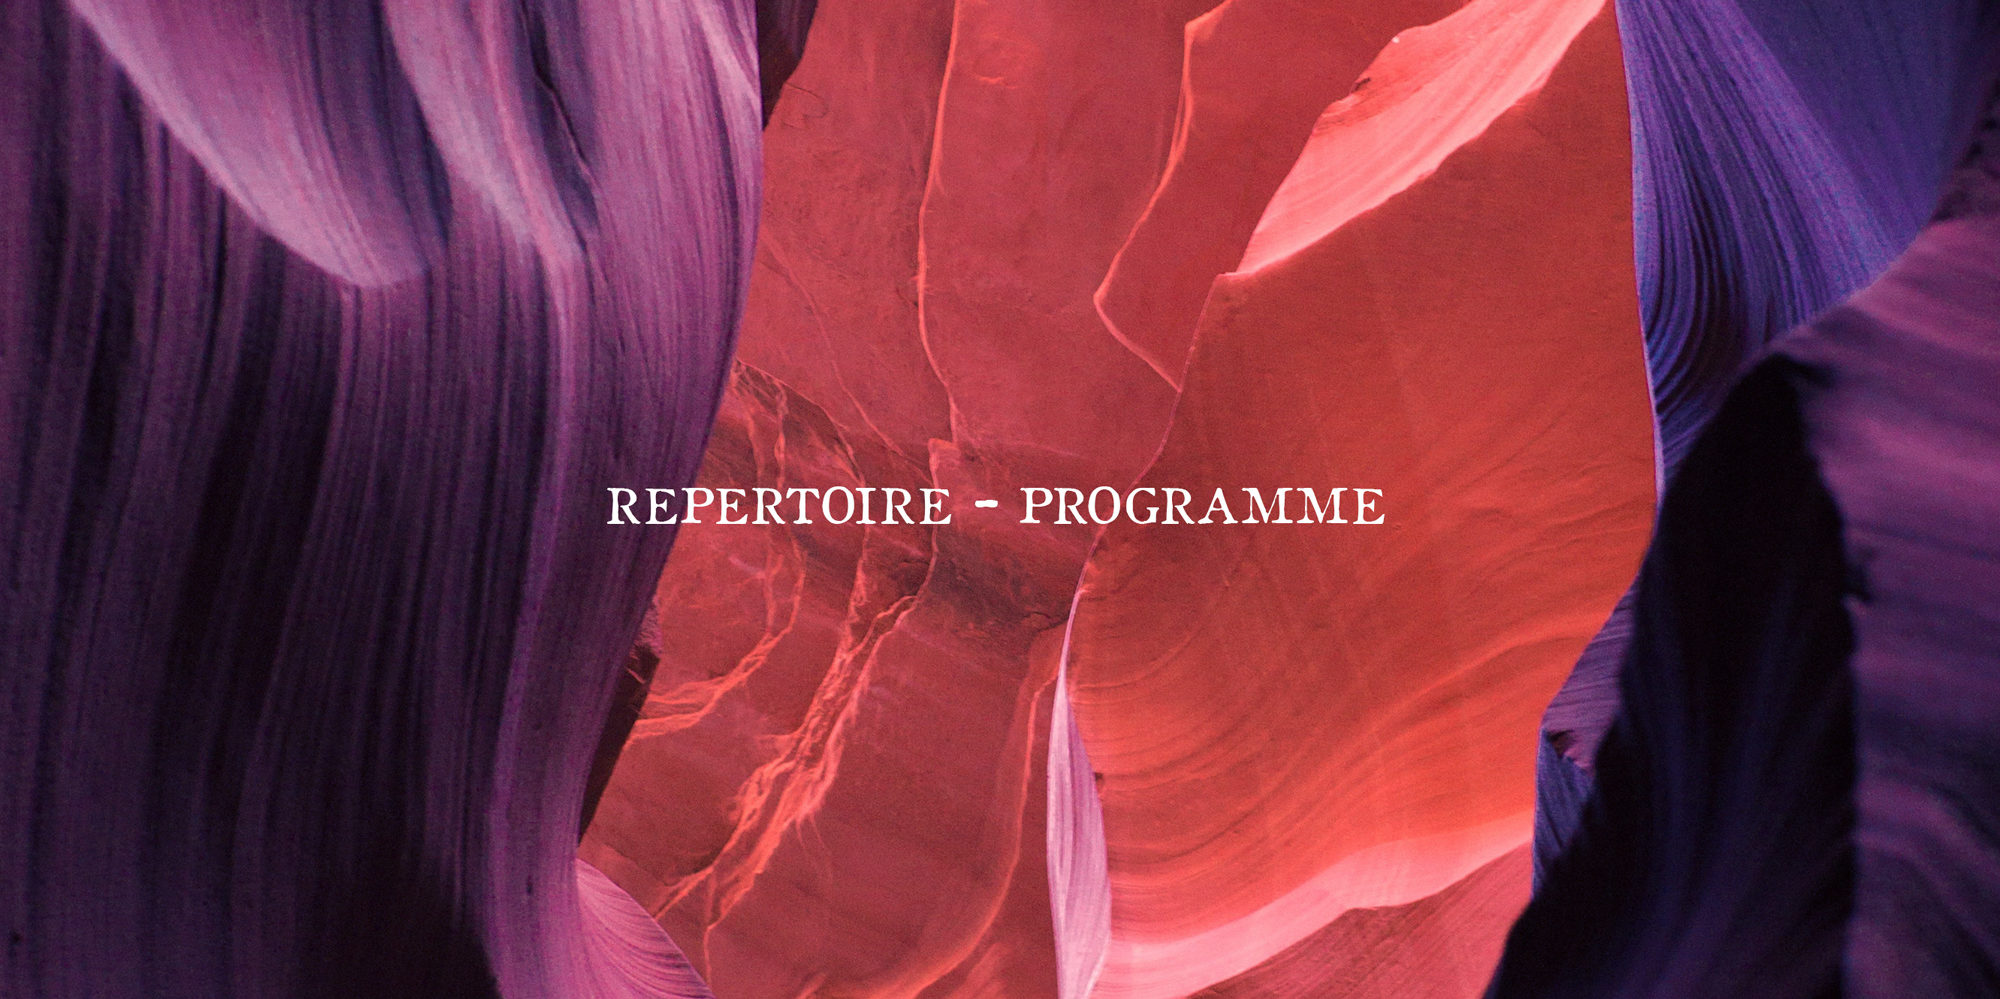 repertoire-programme-ausonia-agence-ysee